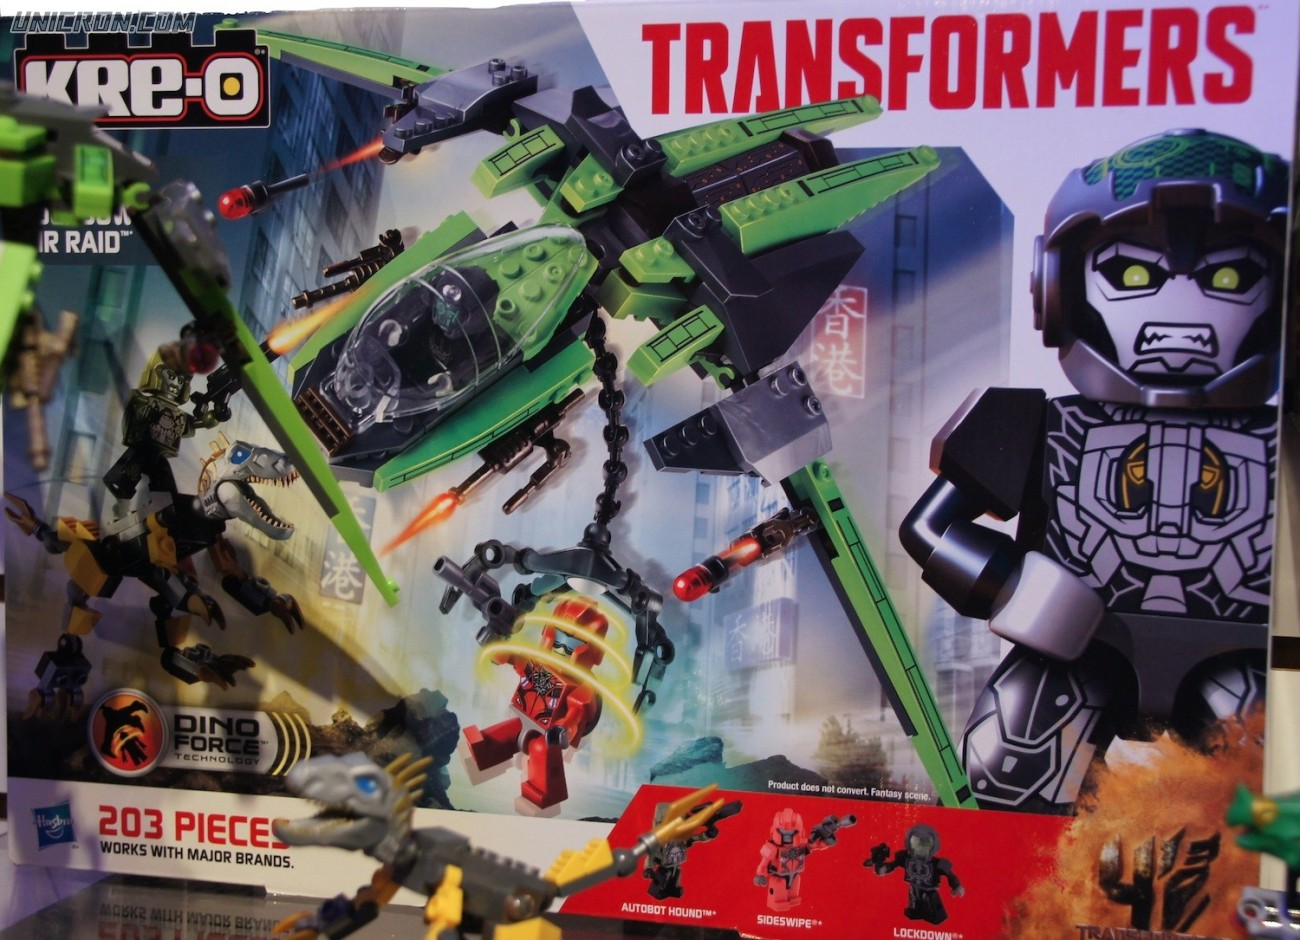 Transformers Kre-O Lockdown Air Raid (Kre-O with Hound and Sideswipe) toy